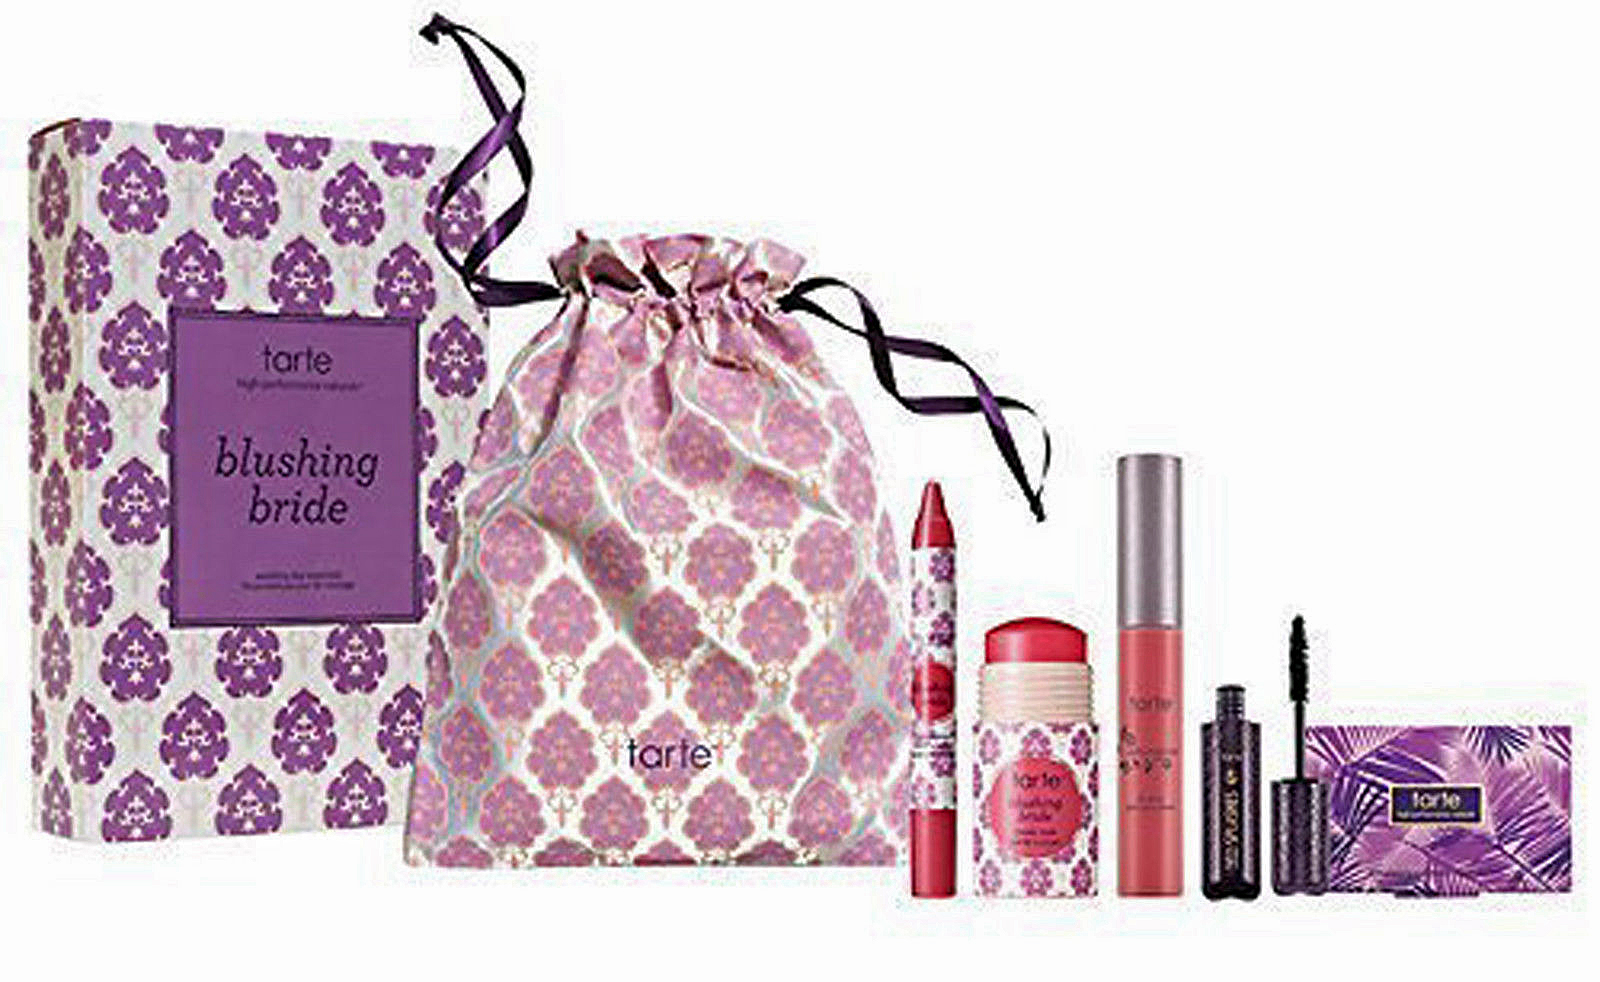 Tarte Blushing Bride Wedding Day Essentials Makeup Set 12412